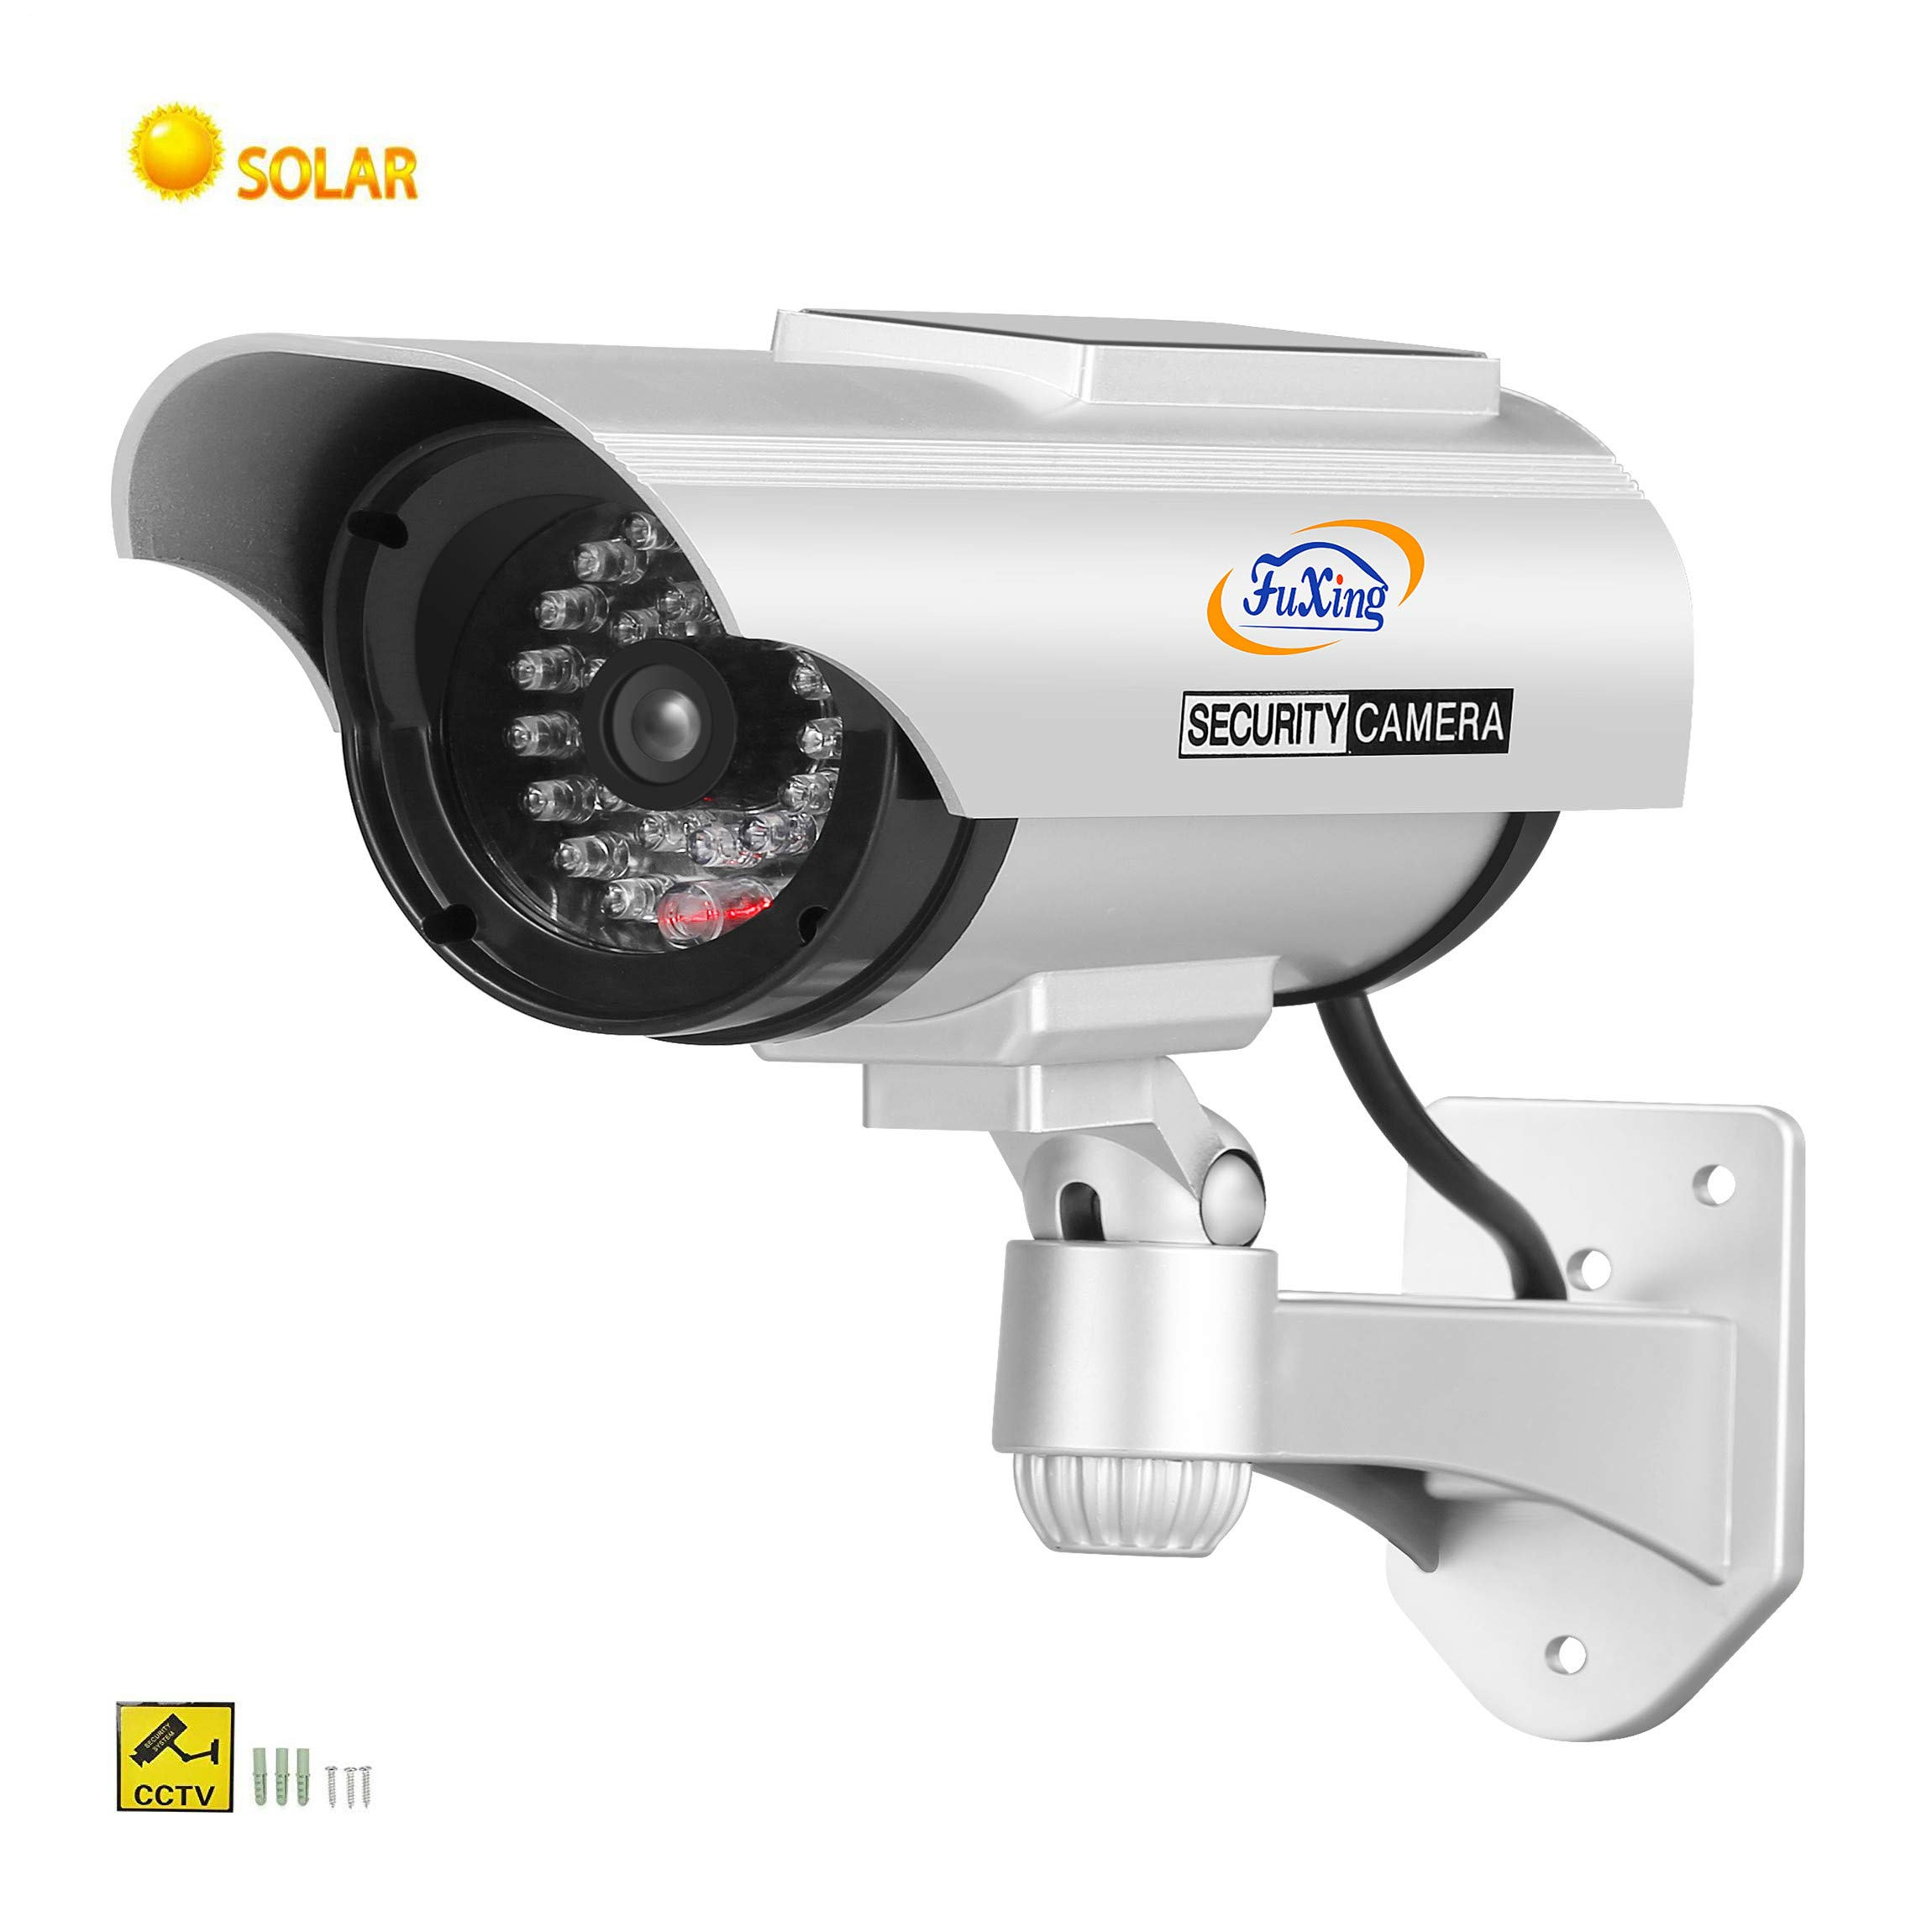 FX Solar Fake Dummy CCTV Security Surveillance Camera with Solar Pannel for Blinking Red LED Light with CCTV Warning Signs Sticker by FX